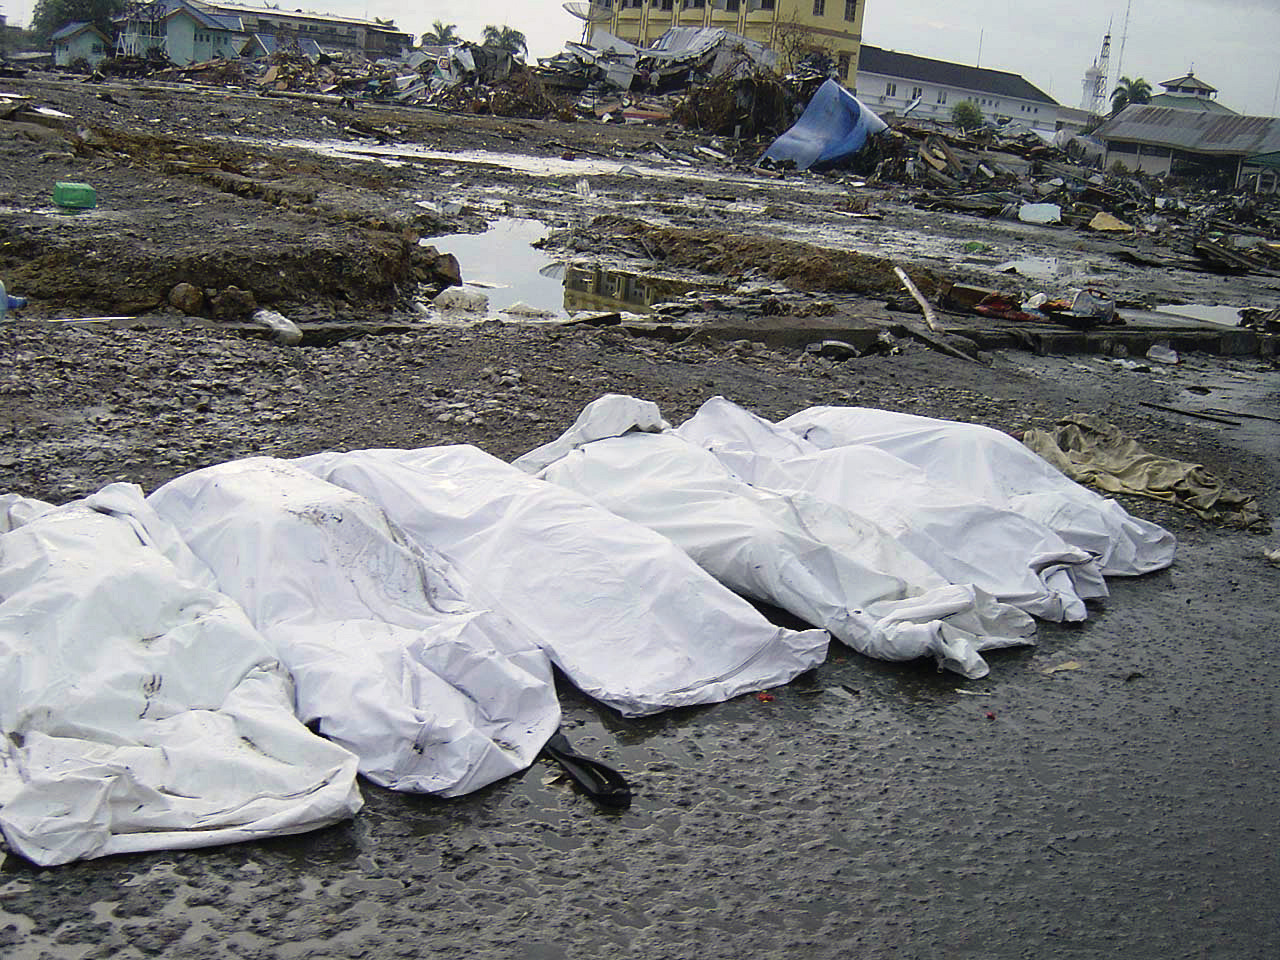 Covered bodies on the beach from a devastating Tsunami